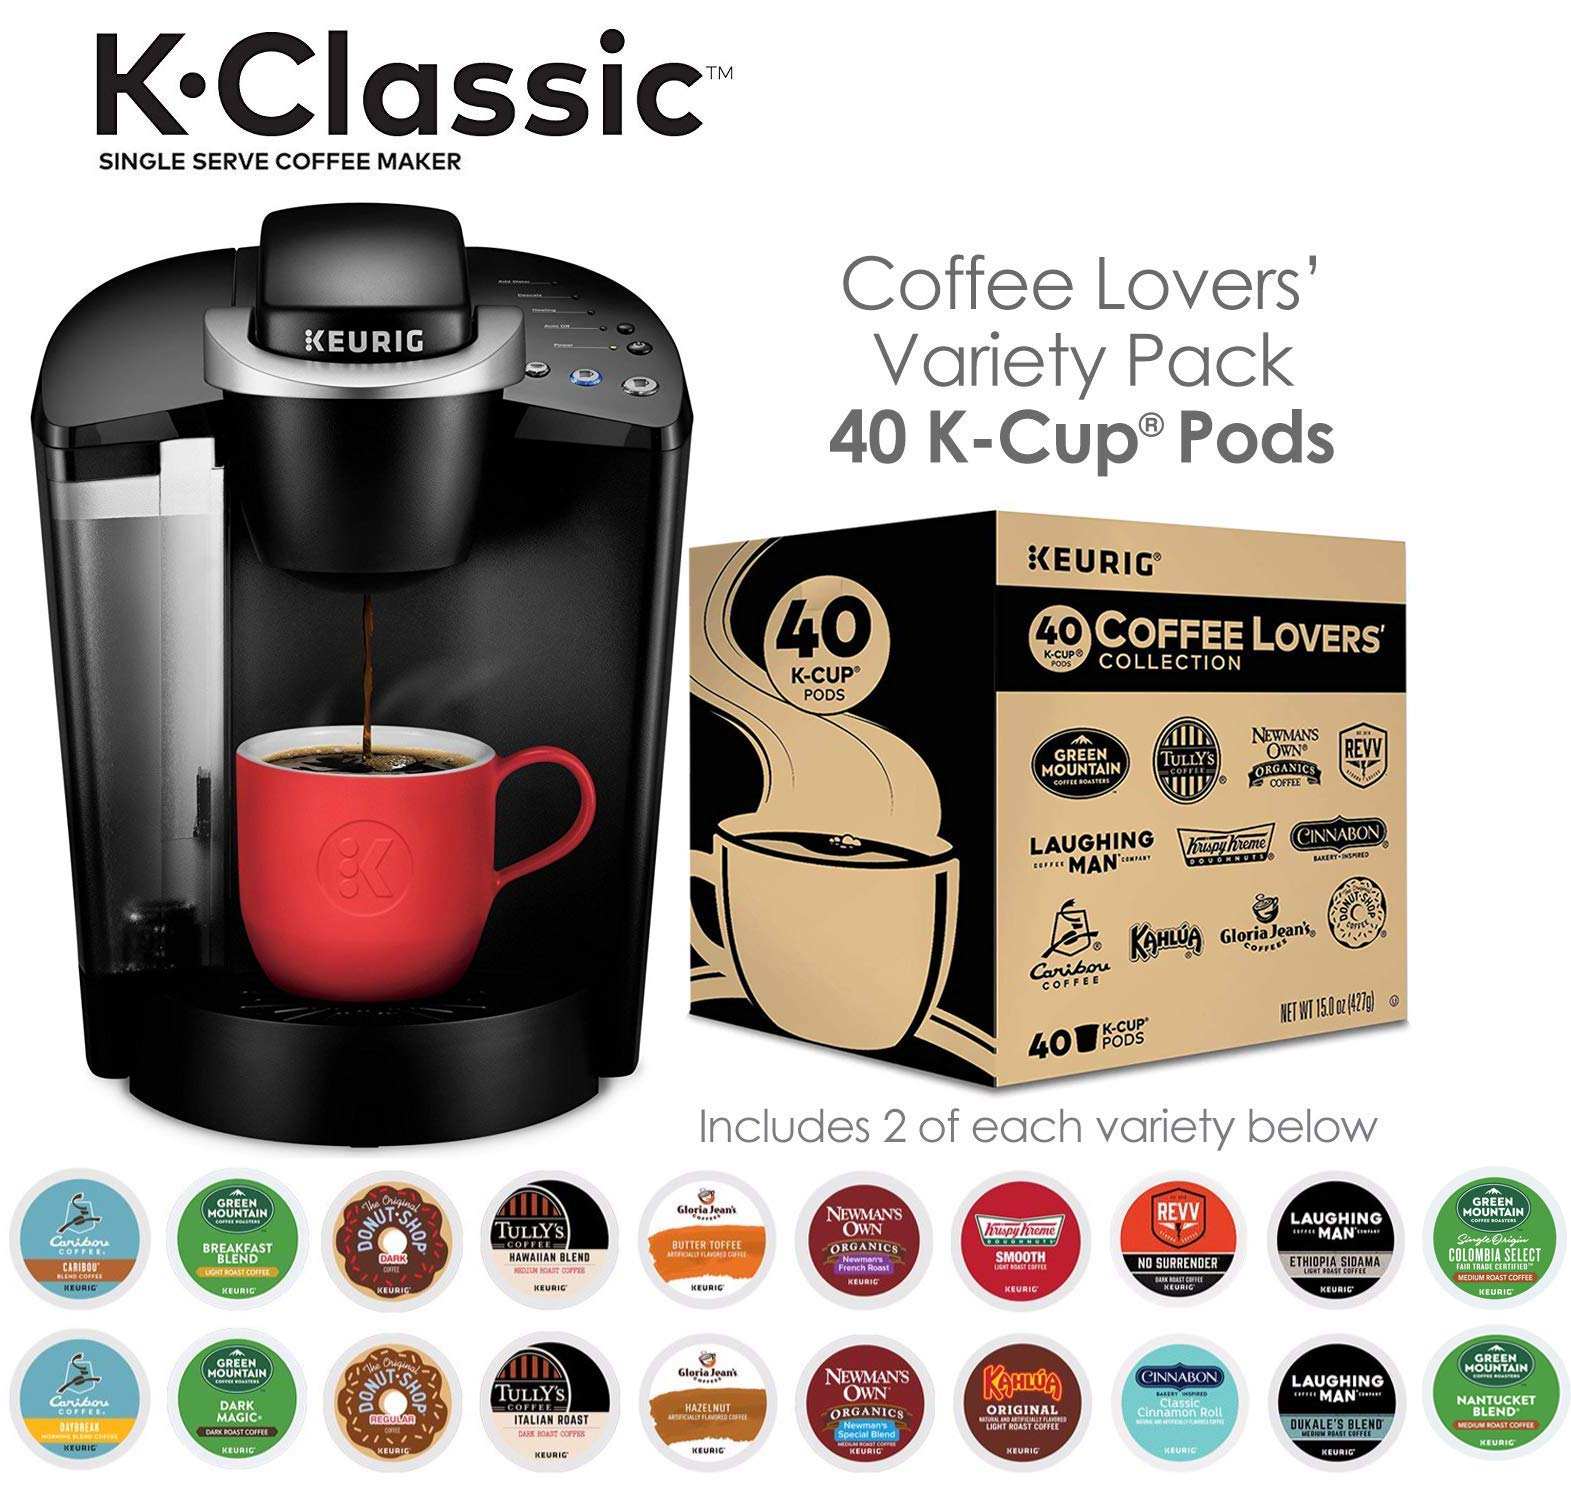 Keurig K-Classic Maker Single Serve K-Cup Pod Coffee Brewer, Black Lovers' Collection, 40 Count by Keurig